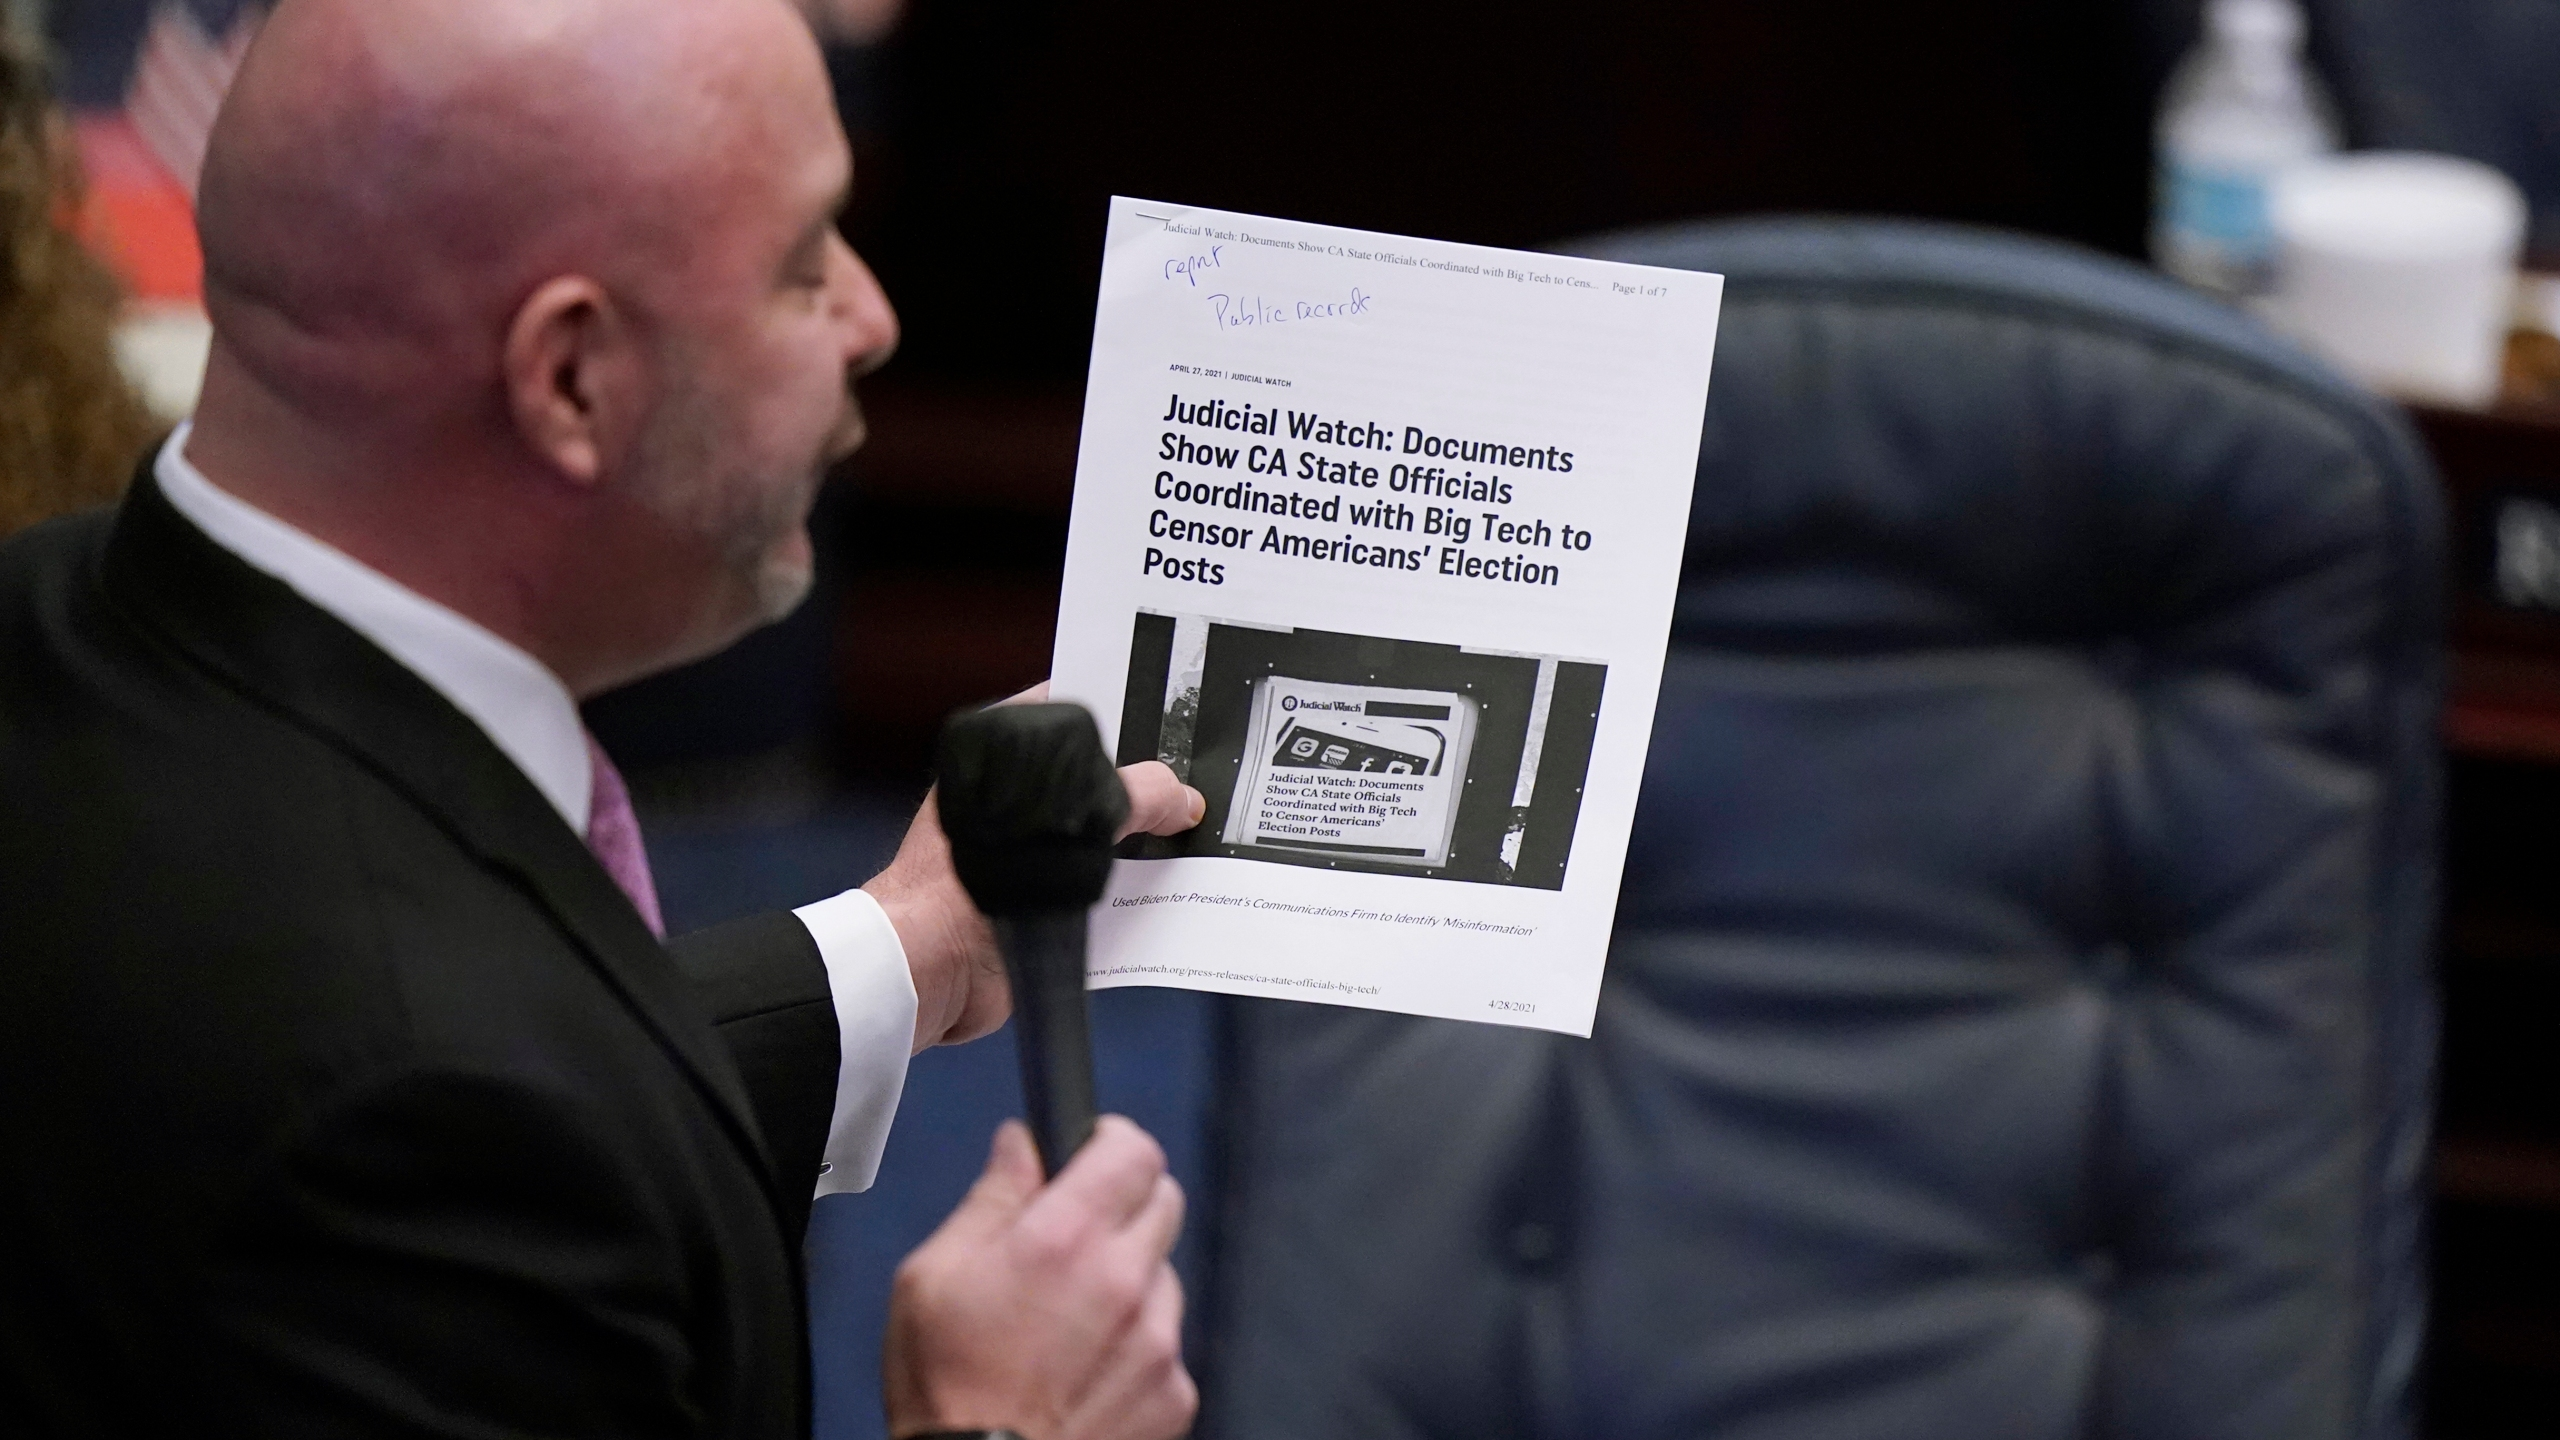 Florida Rep. Blaise Ingoglia holds up an article from Judicial Watch, as he speaks during a legislative session, Wednesday, April 28, 2021, at the Capitol in Tallahassee, Fla. (AP Photo/Wilfredo Lee)